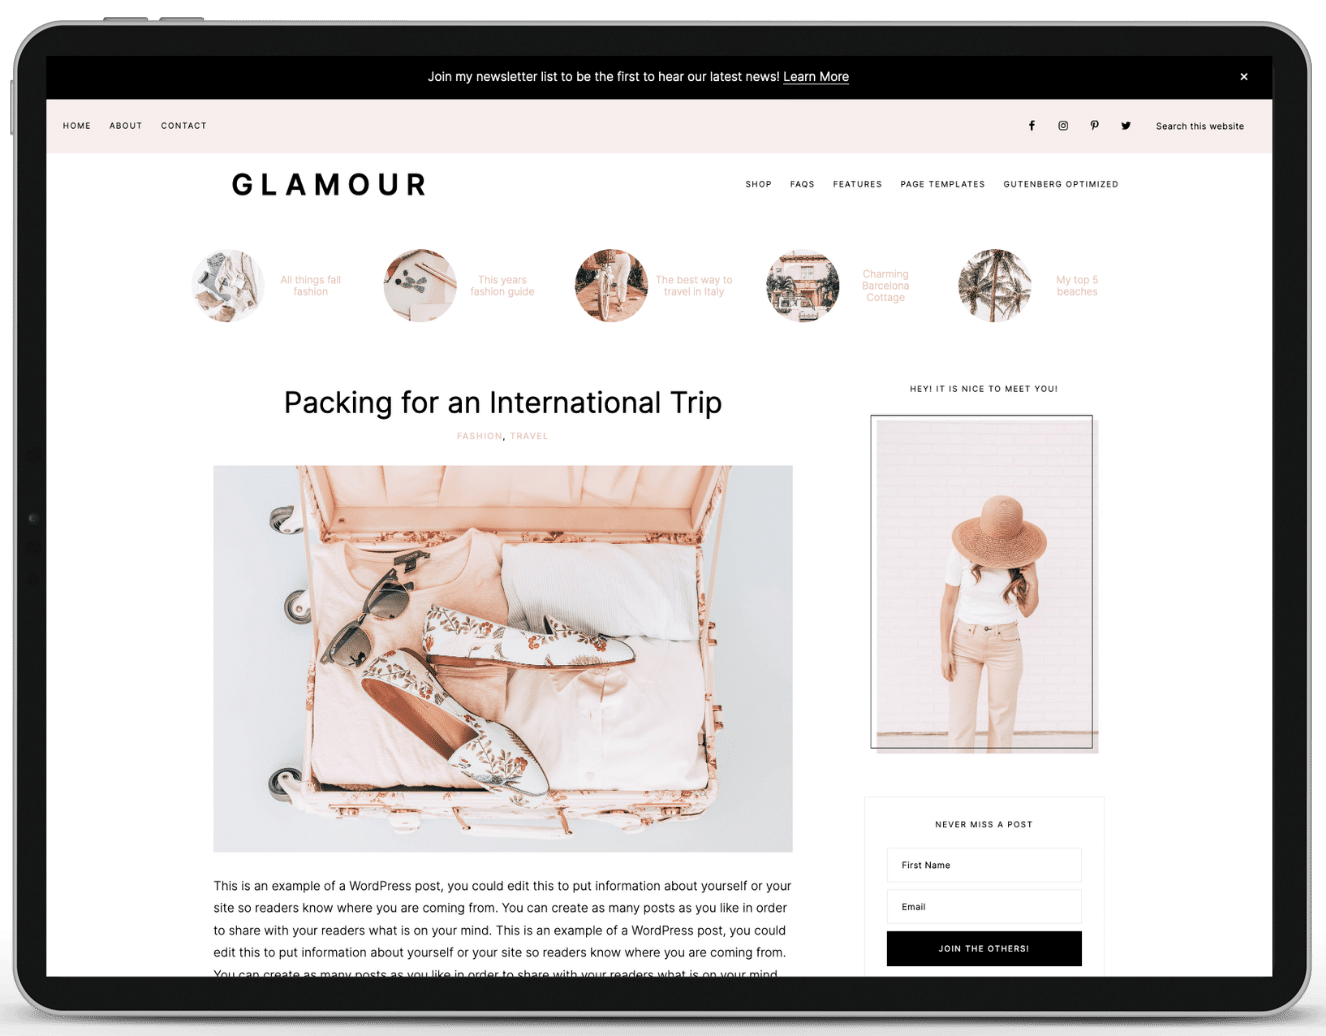 Glamour-Related Posts for WP plugin